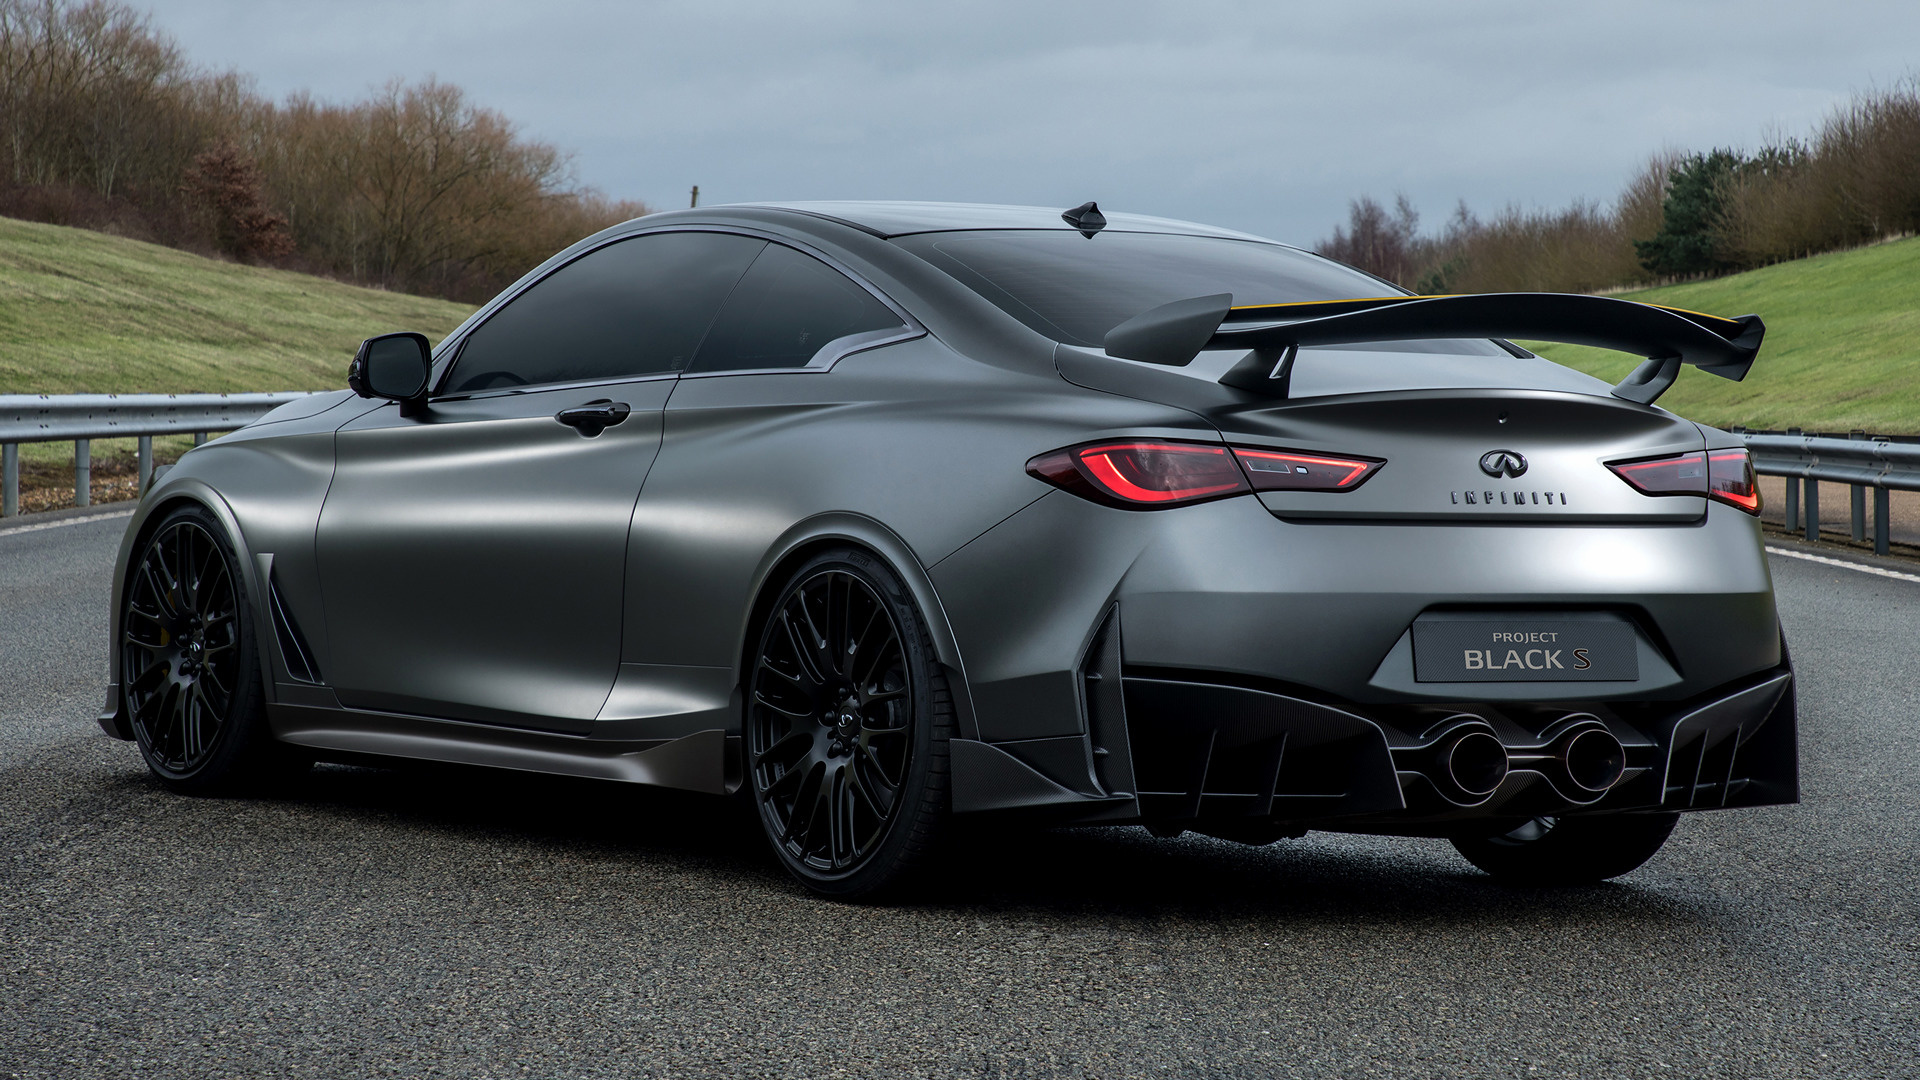 2017 Infiniti Q60 Project Black S Concept - Wallpapers and ...